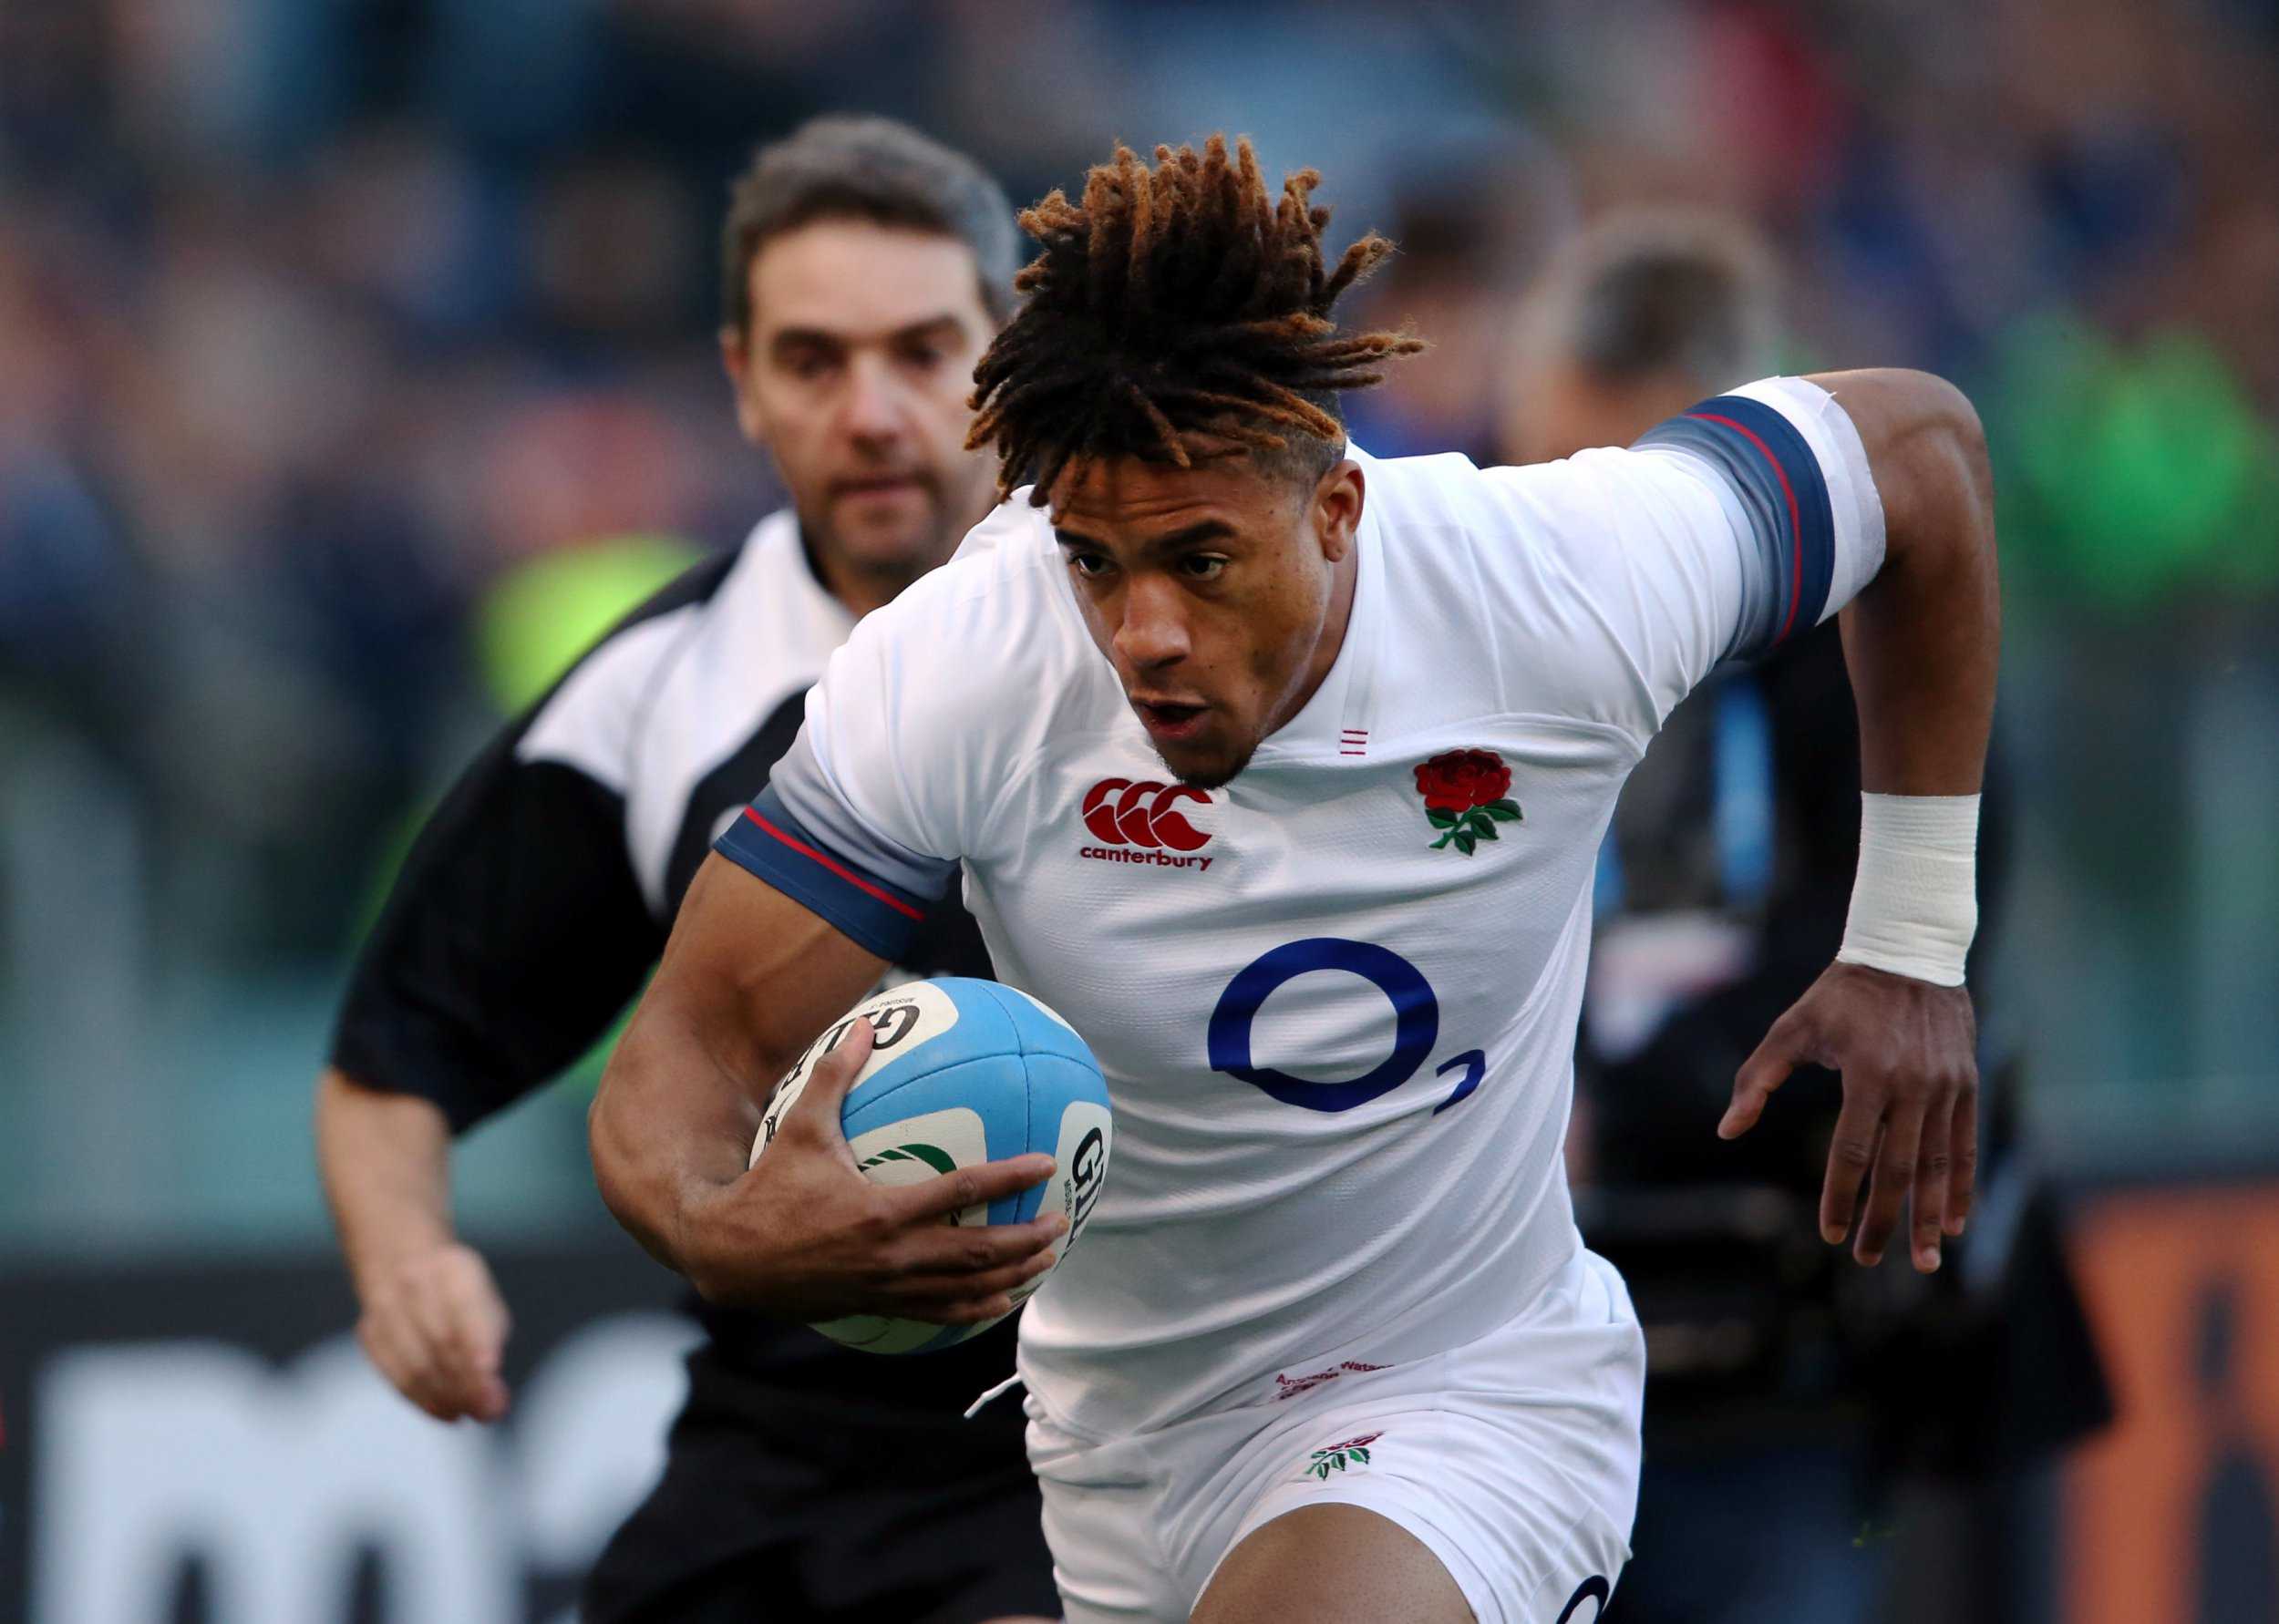 Six Nations 2018: When is England vs Wales and how to watch it?